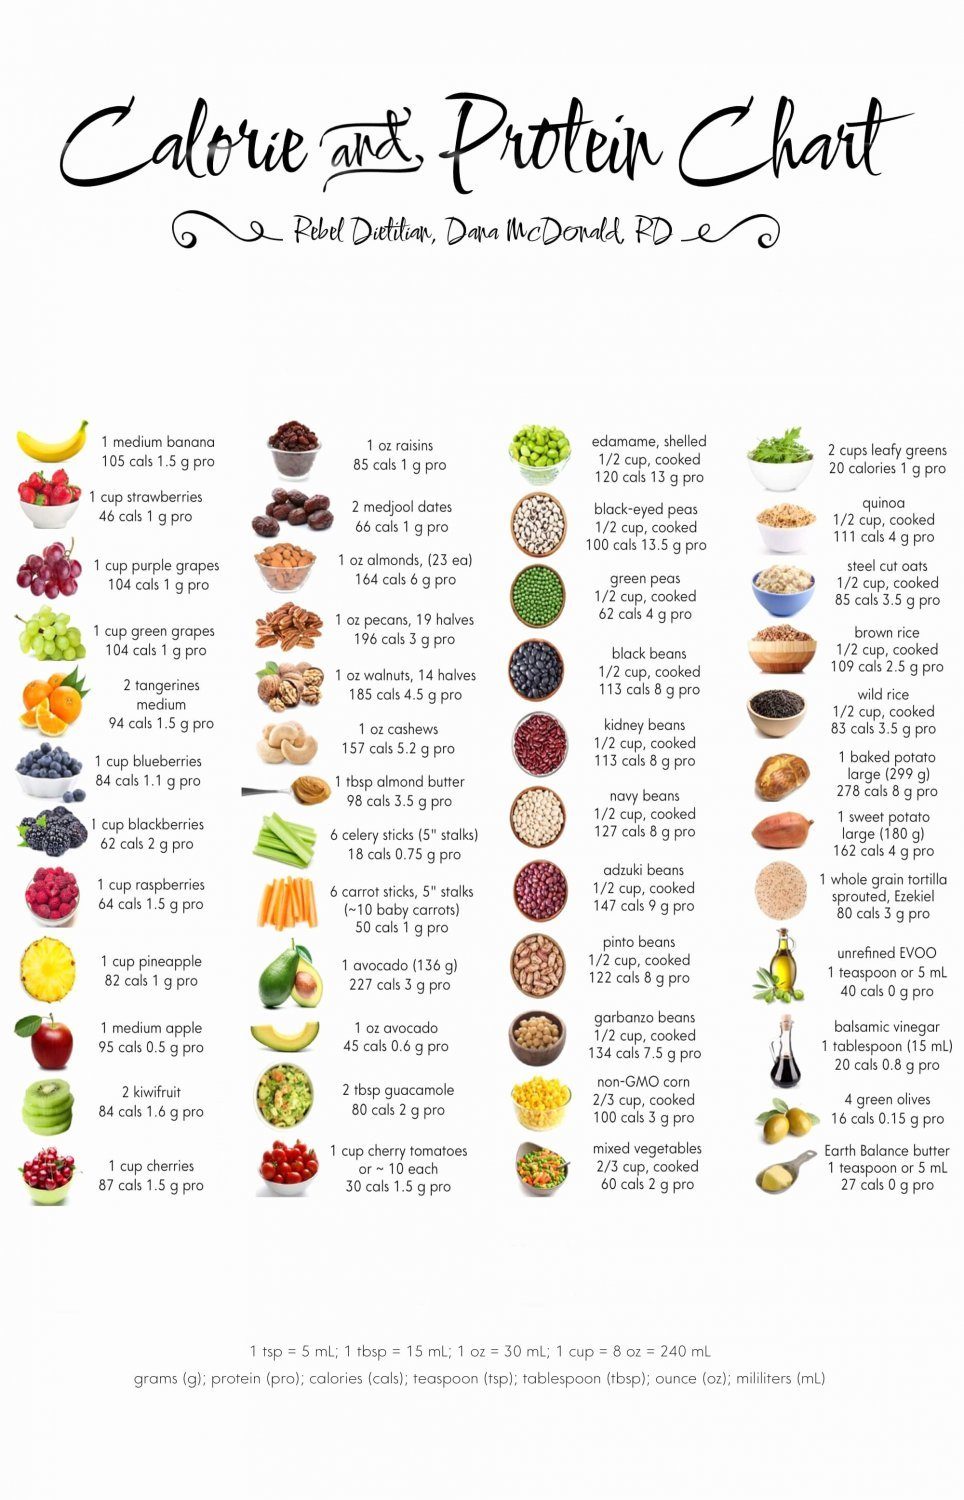 Calorie and Protein Chart 13x19 inches Poster Print